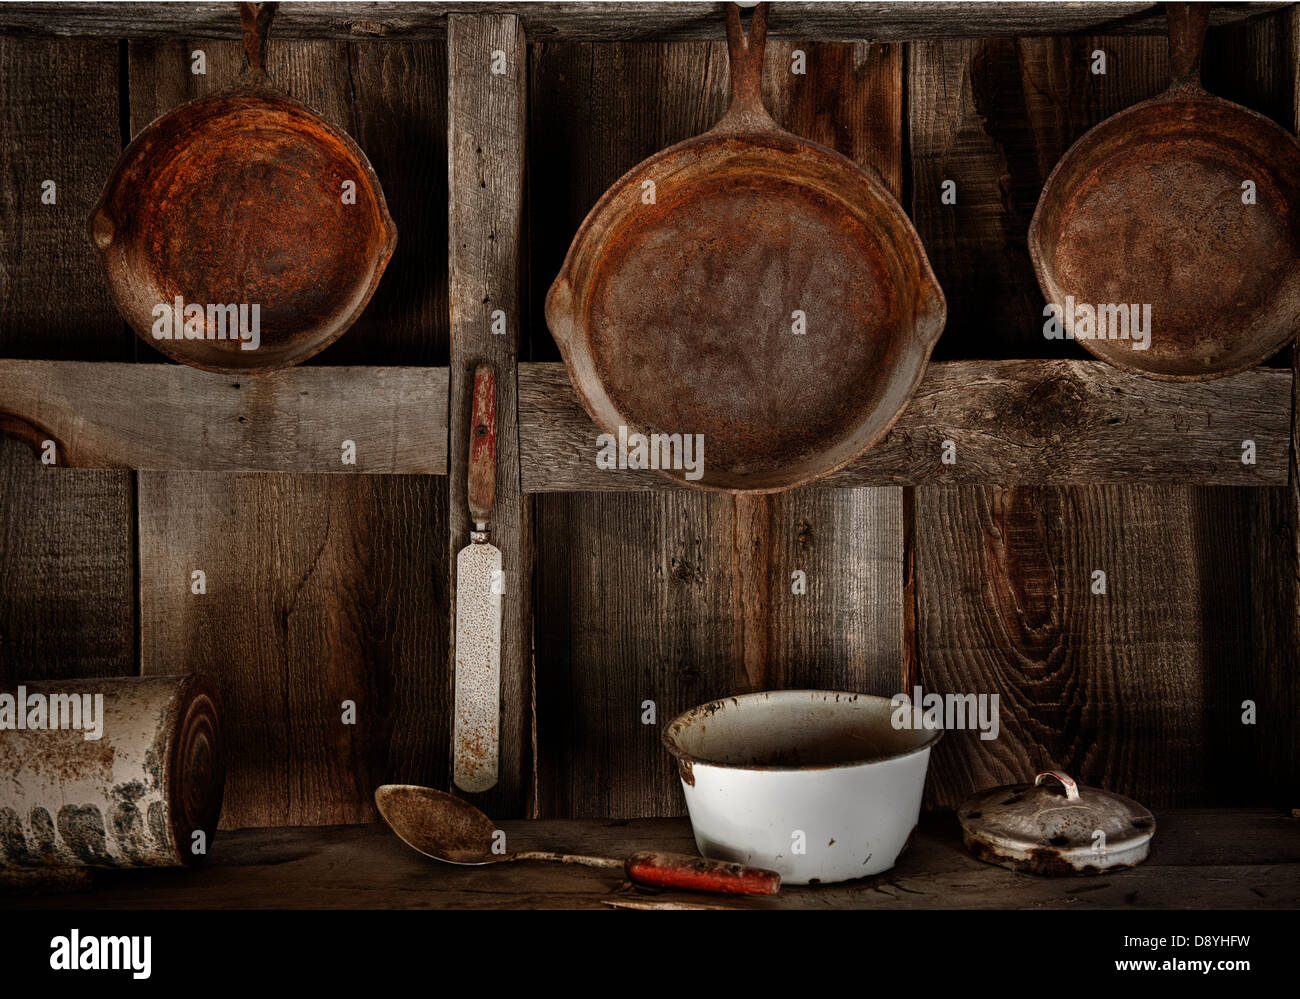 a kitchen utensils vignette featuring a symmetrical composition and desert patina. - Stock Image